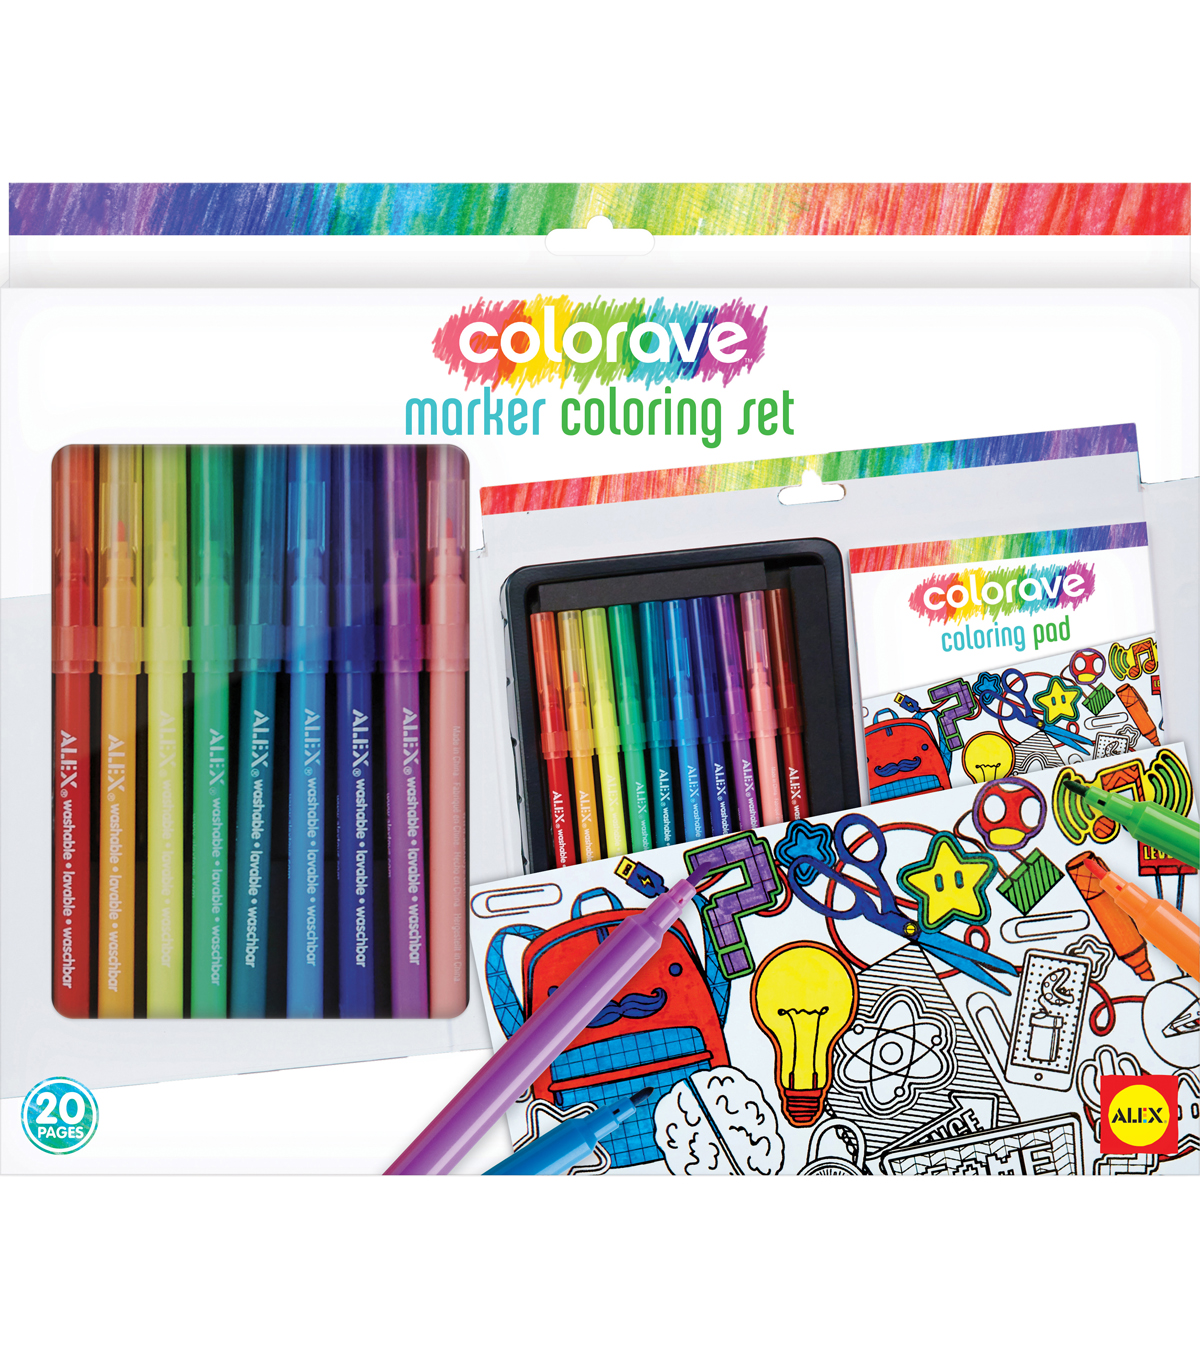 Colorave Marker Coloring Set